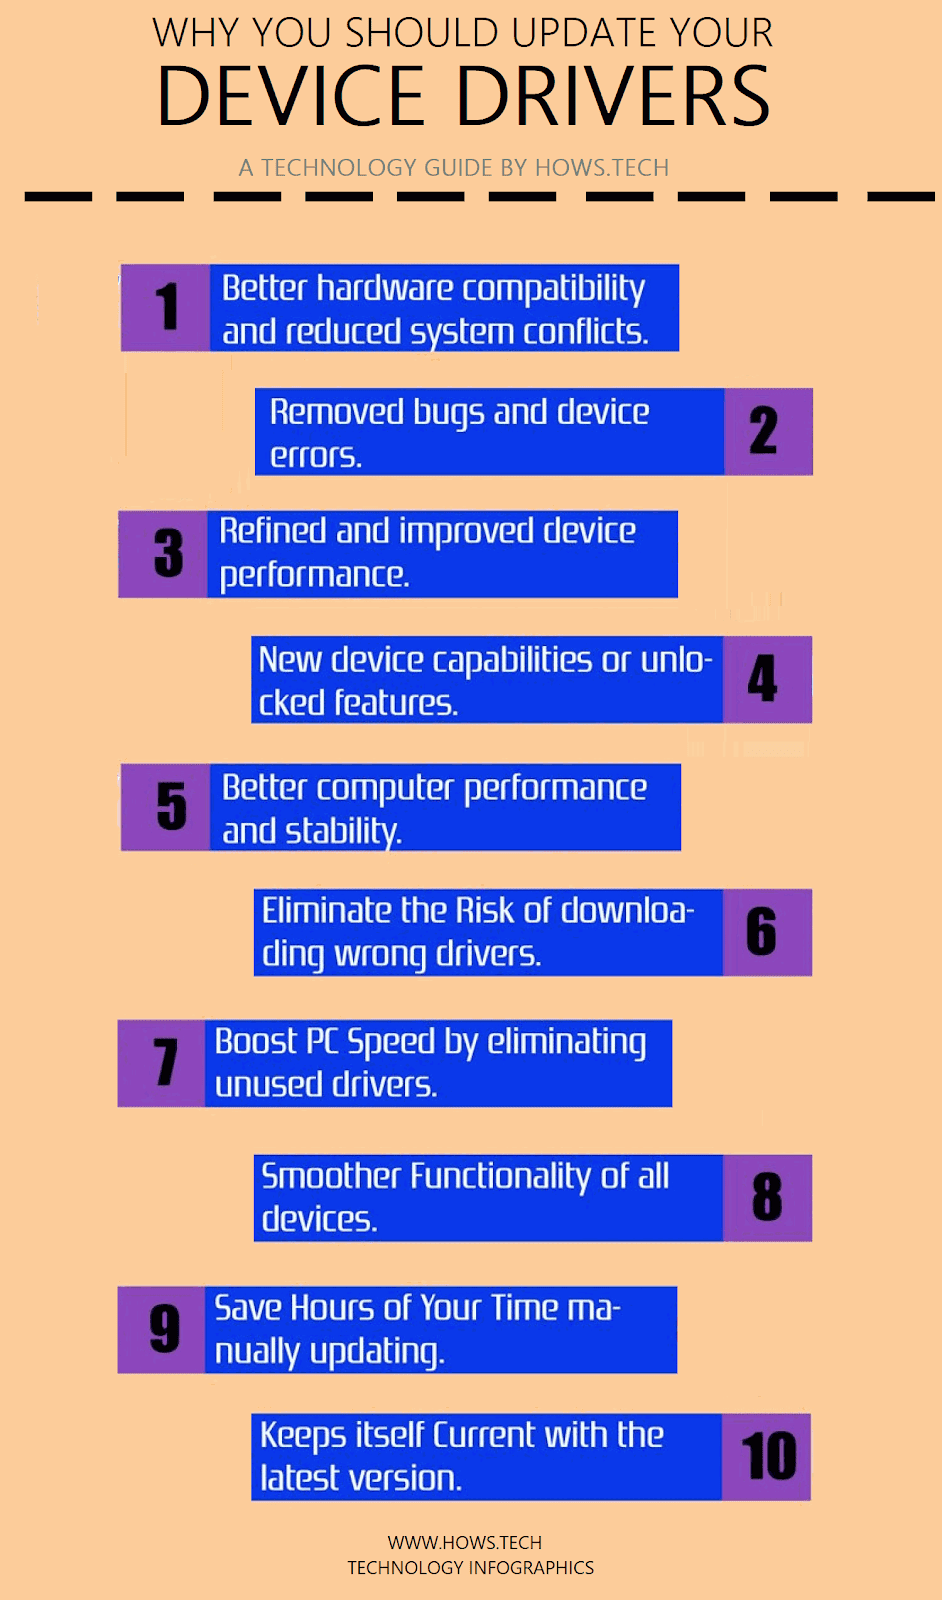 Why Should You Update Device Drivers